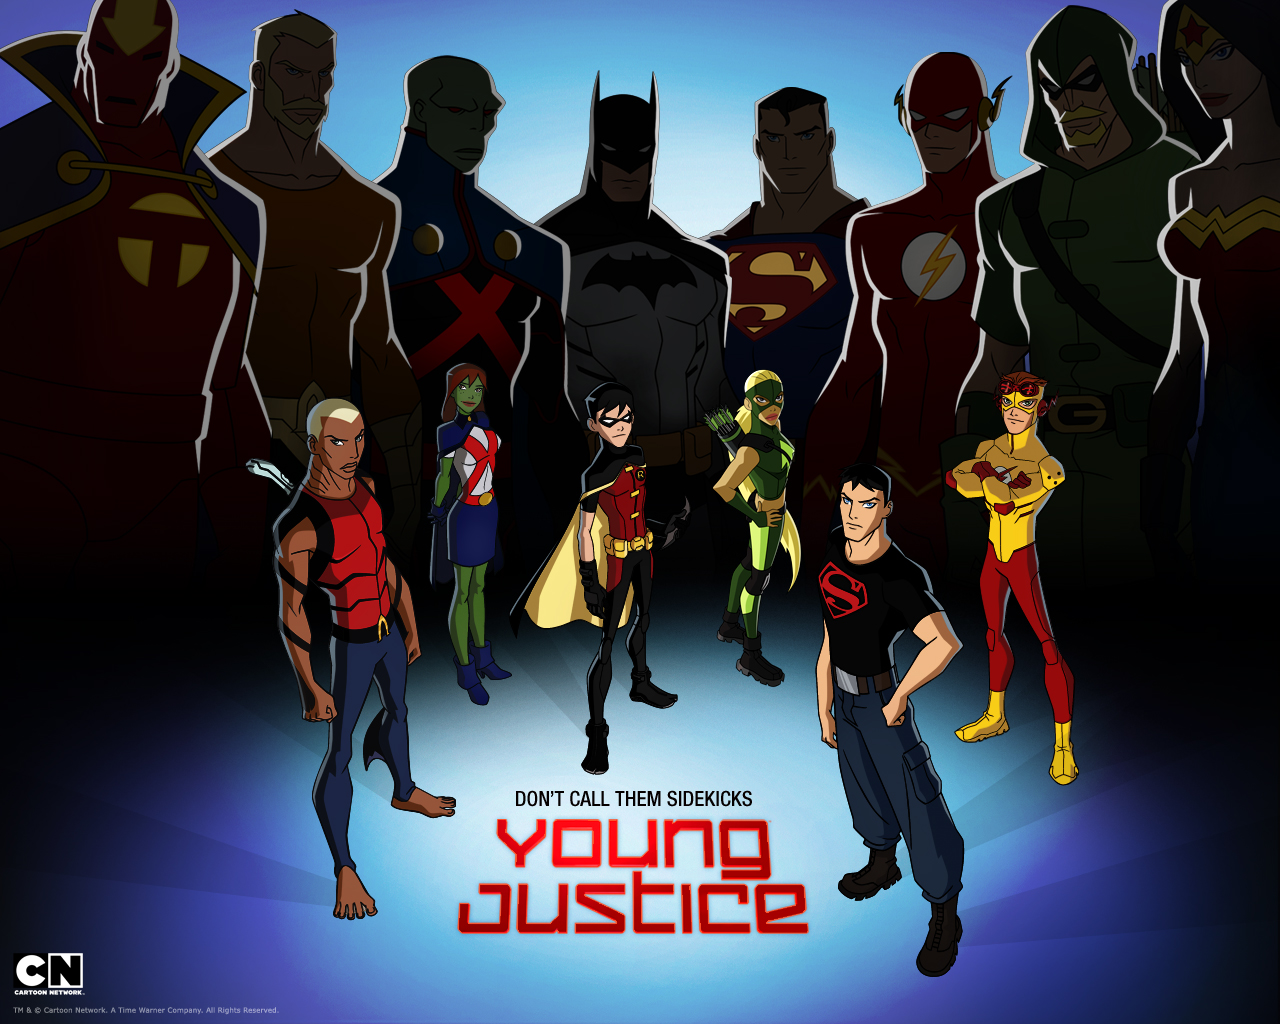 wallpaper papel de parede do desenho animado justi a jovem young justice invasion brasil. Black Bedroom Furniture Sets. Home Design Ideas